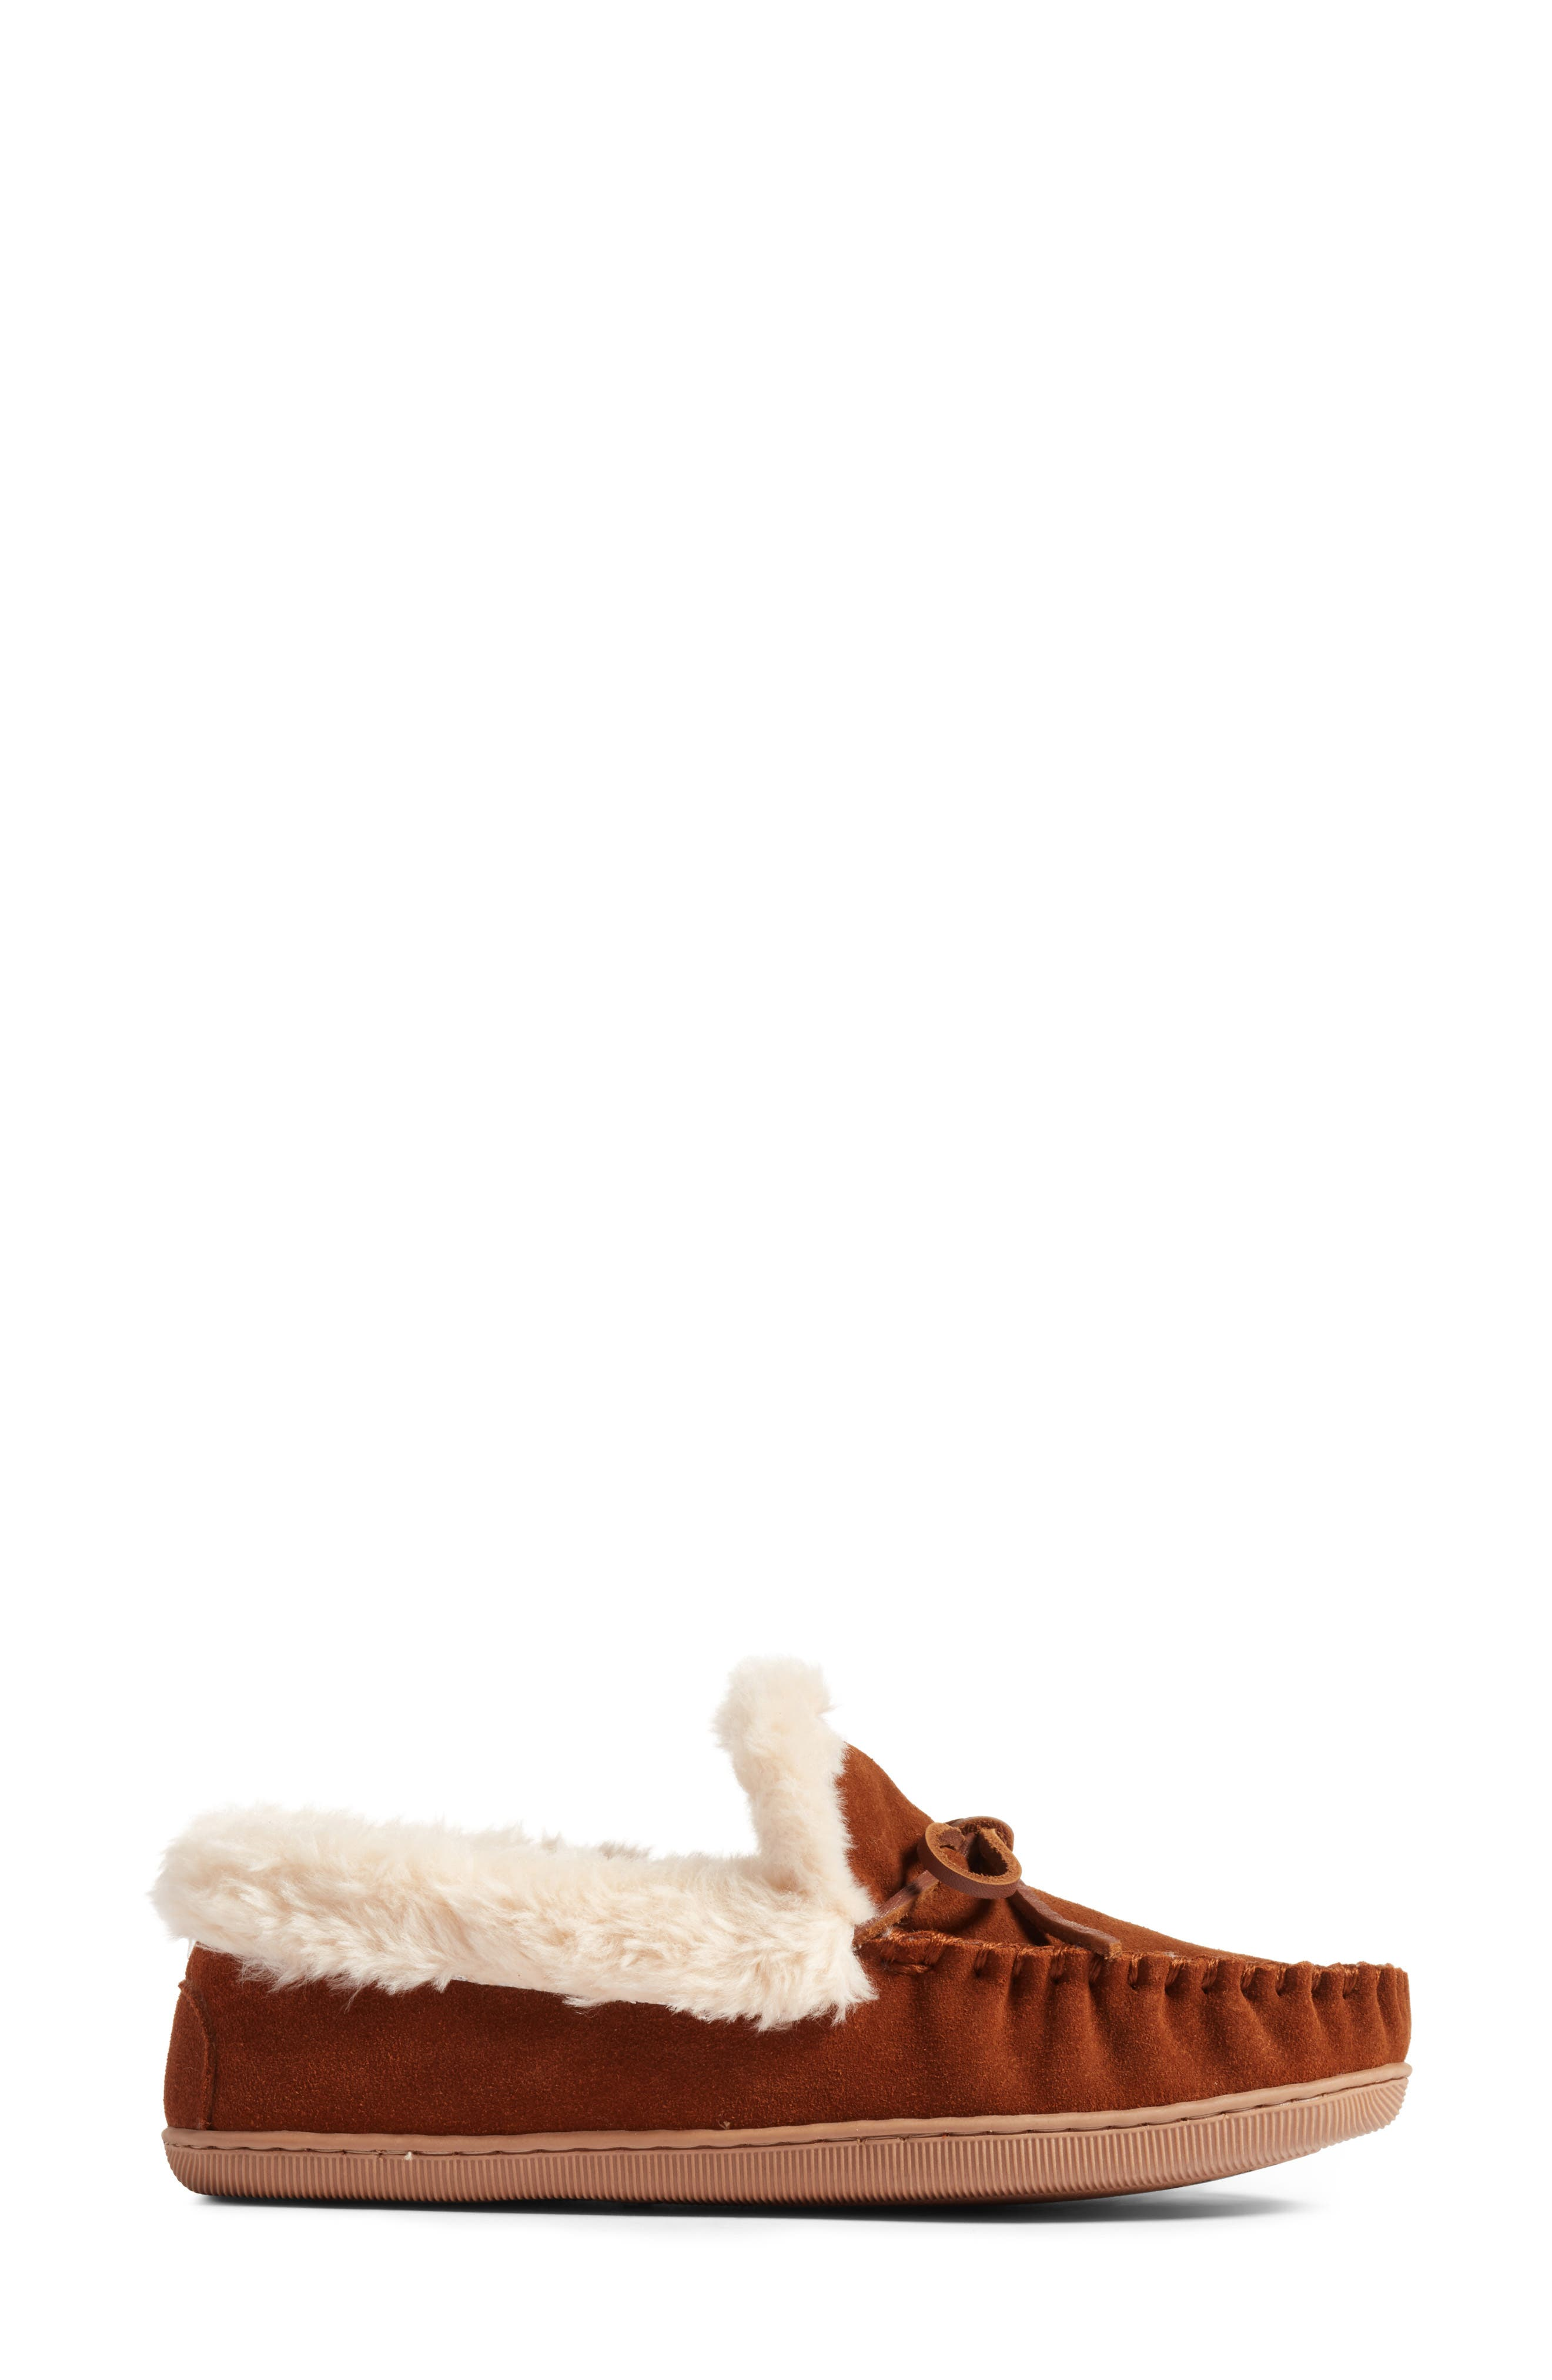 J.Crew Lodge Faux Shearling Moc Slipper,                             Alternate thumbnail 4, color,                             Dark Nutmeg Suede